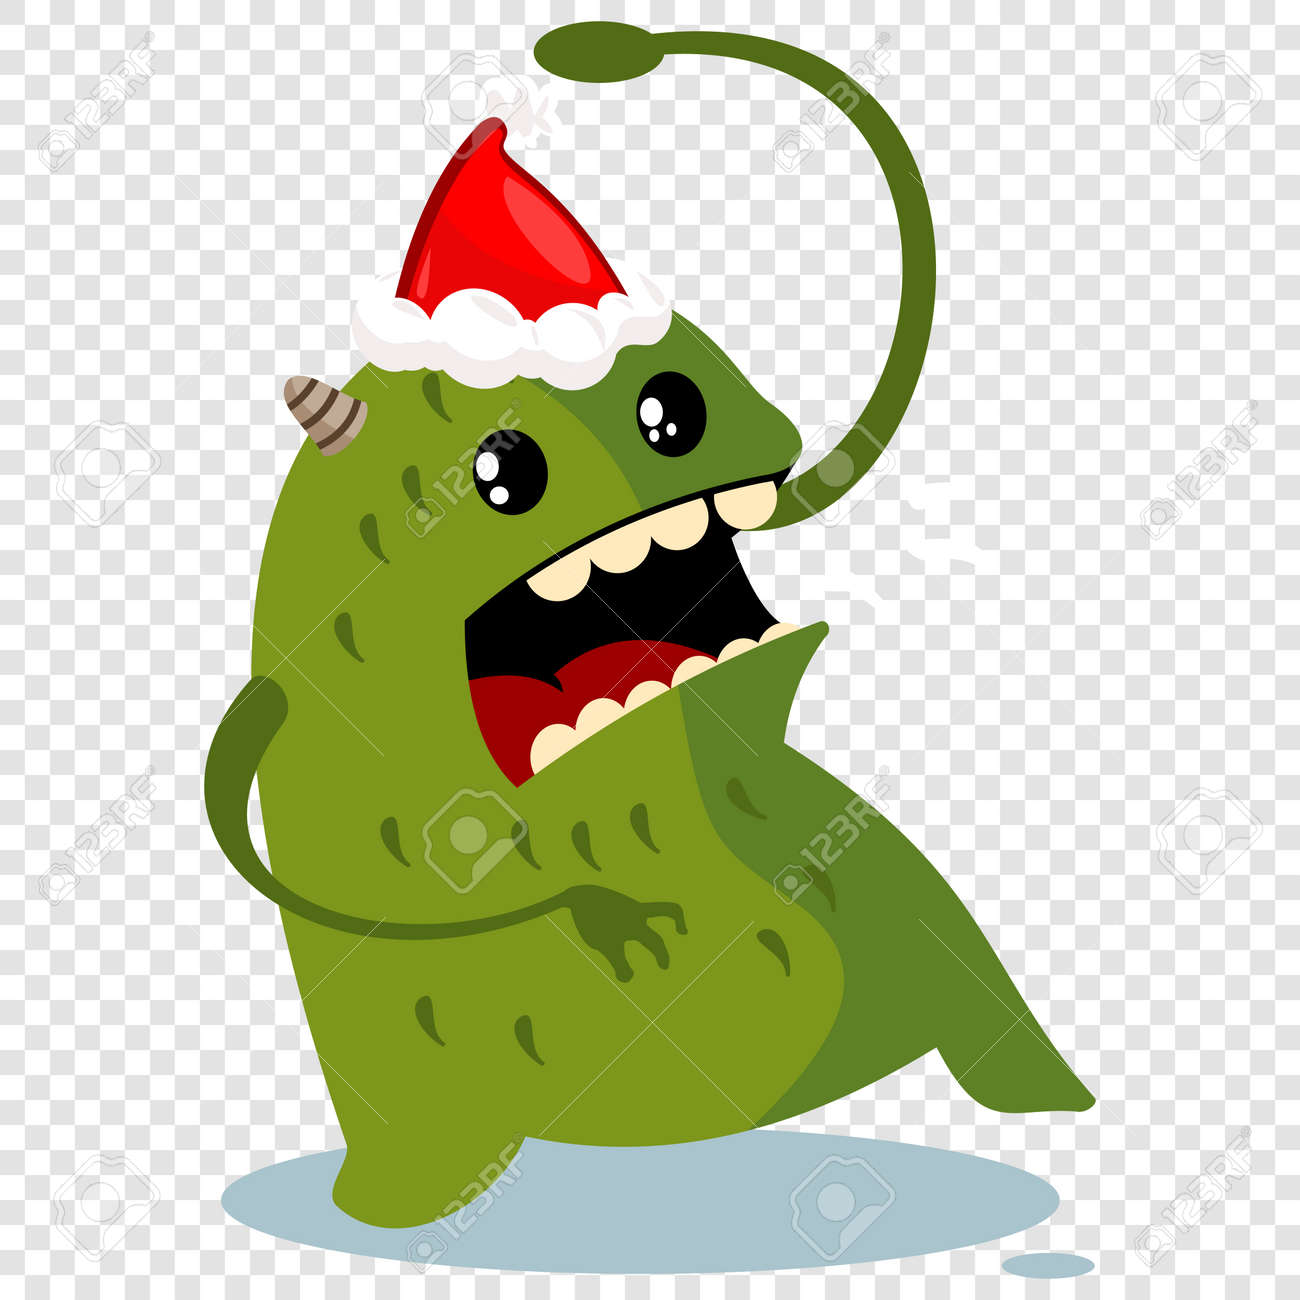 Arresting Santa Vector Character Isolated Santa Hat Outline Transparent Blue Santa Hat Transparent Santa Vector Character Isolated On Atransparent Stock Cartoon Monster Cartoon Monster nice food Santa Hat Transparent